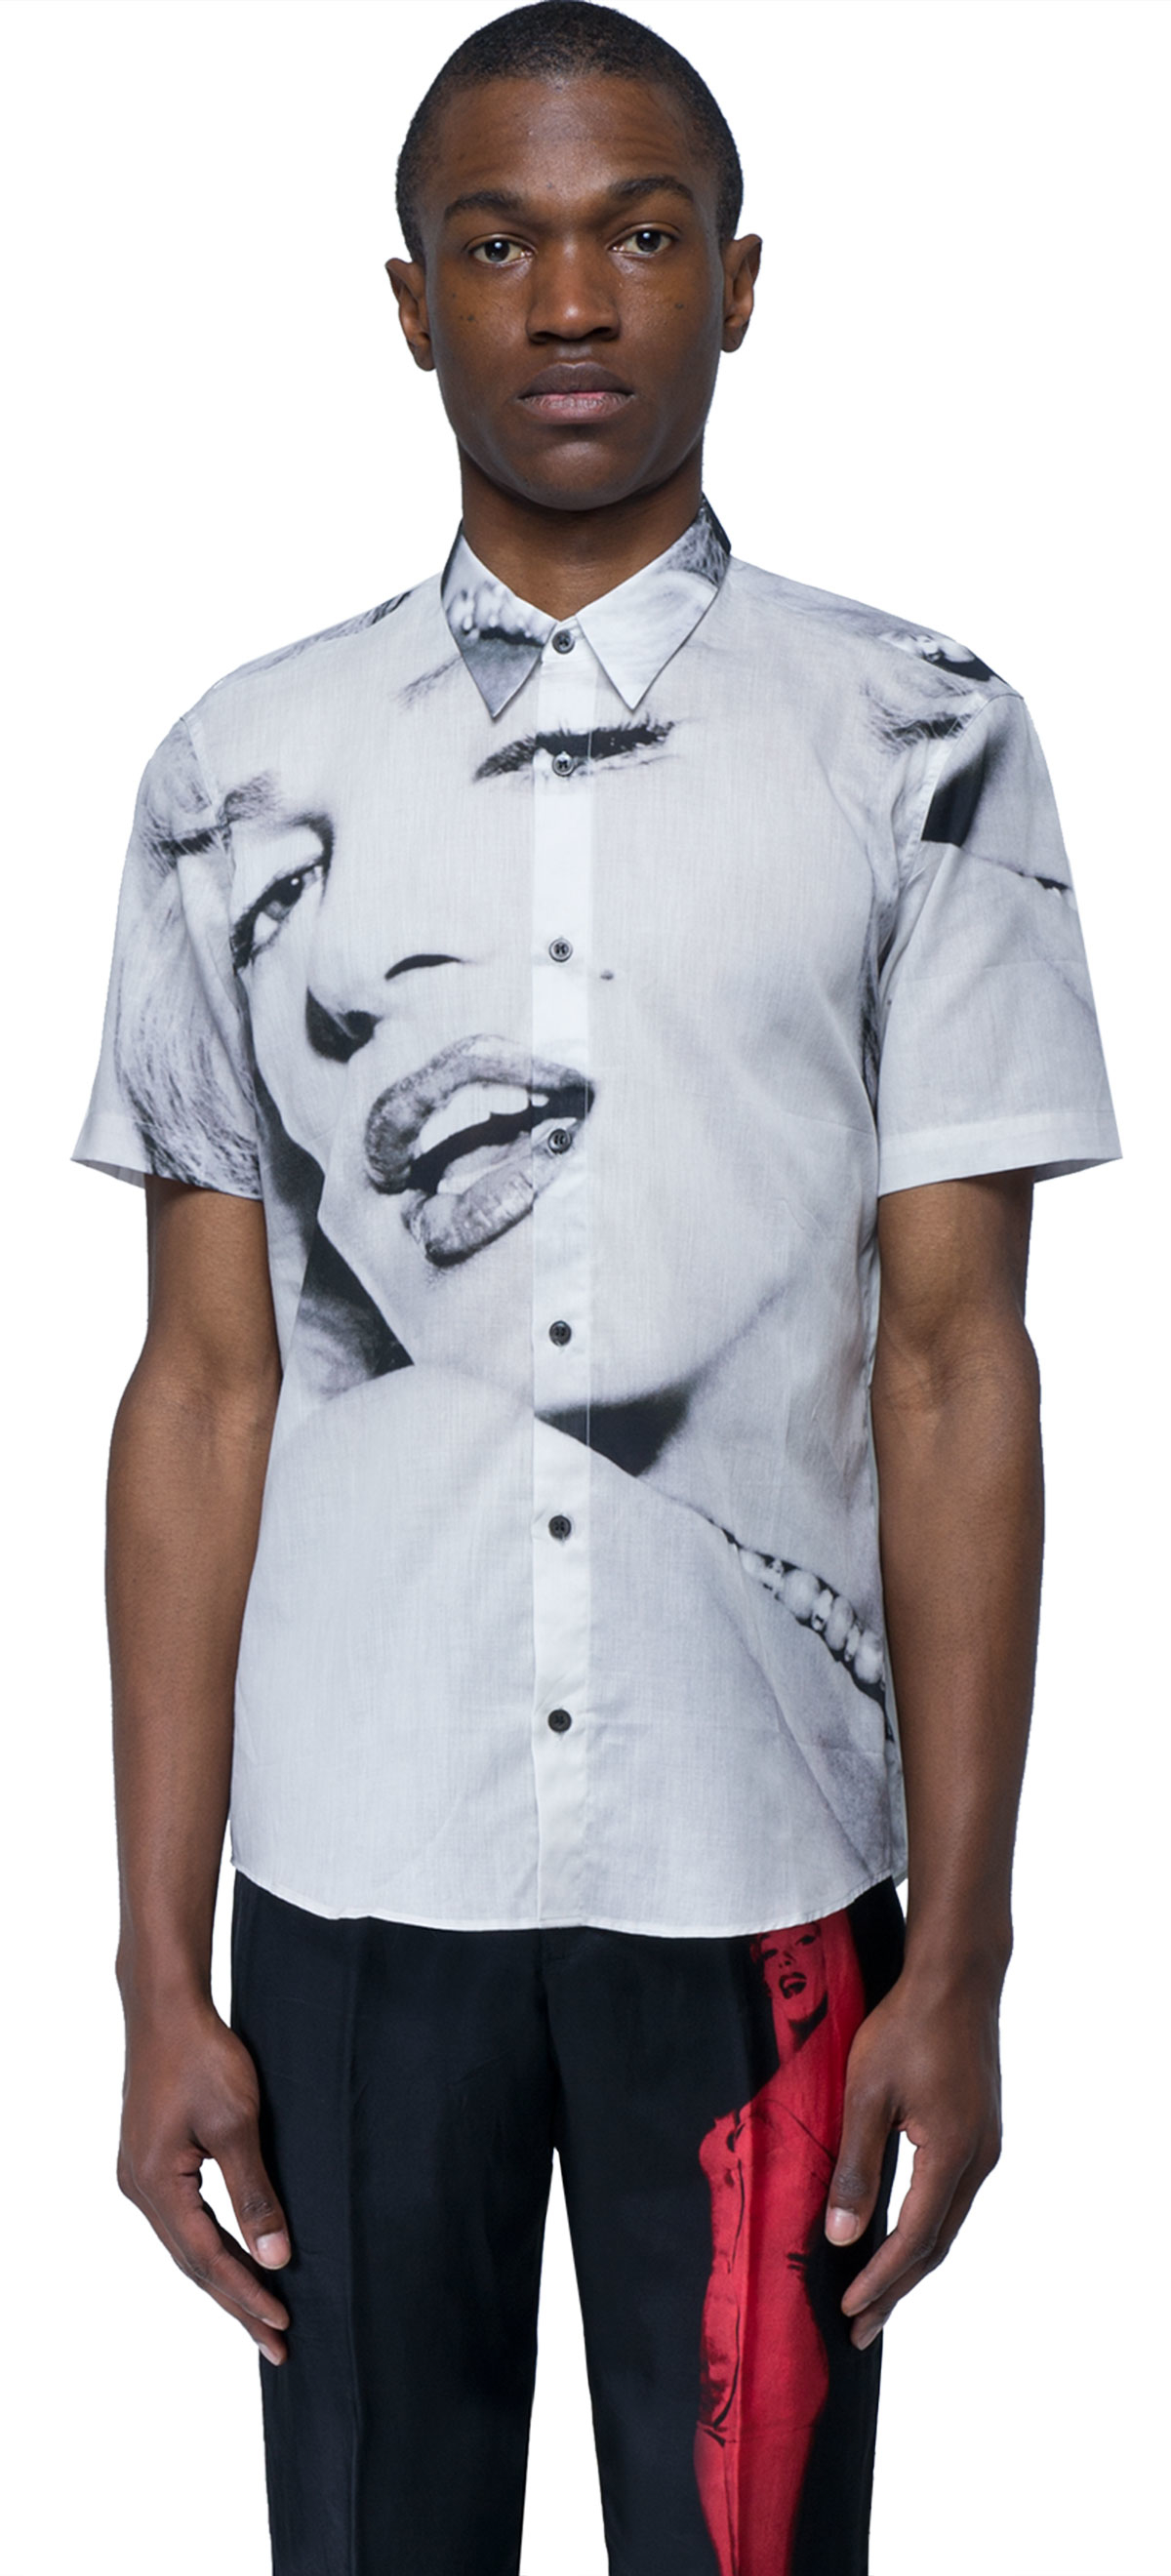 Dries van noten marylin t shirt in white for men lyst for Dries van noten mens shirt